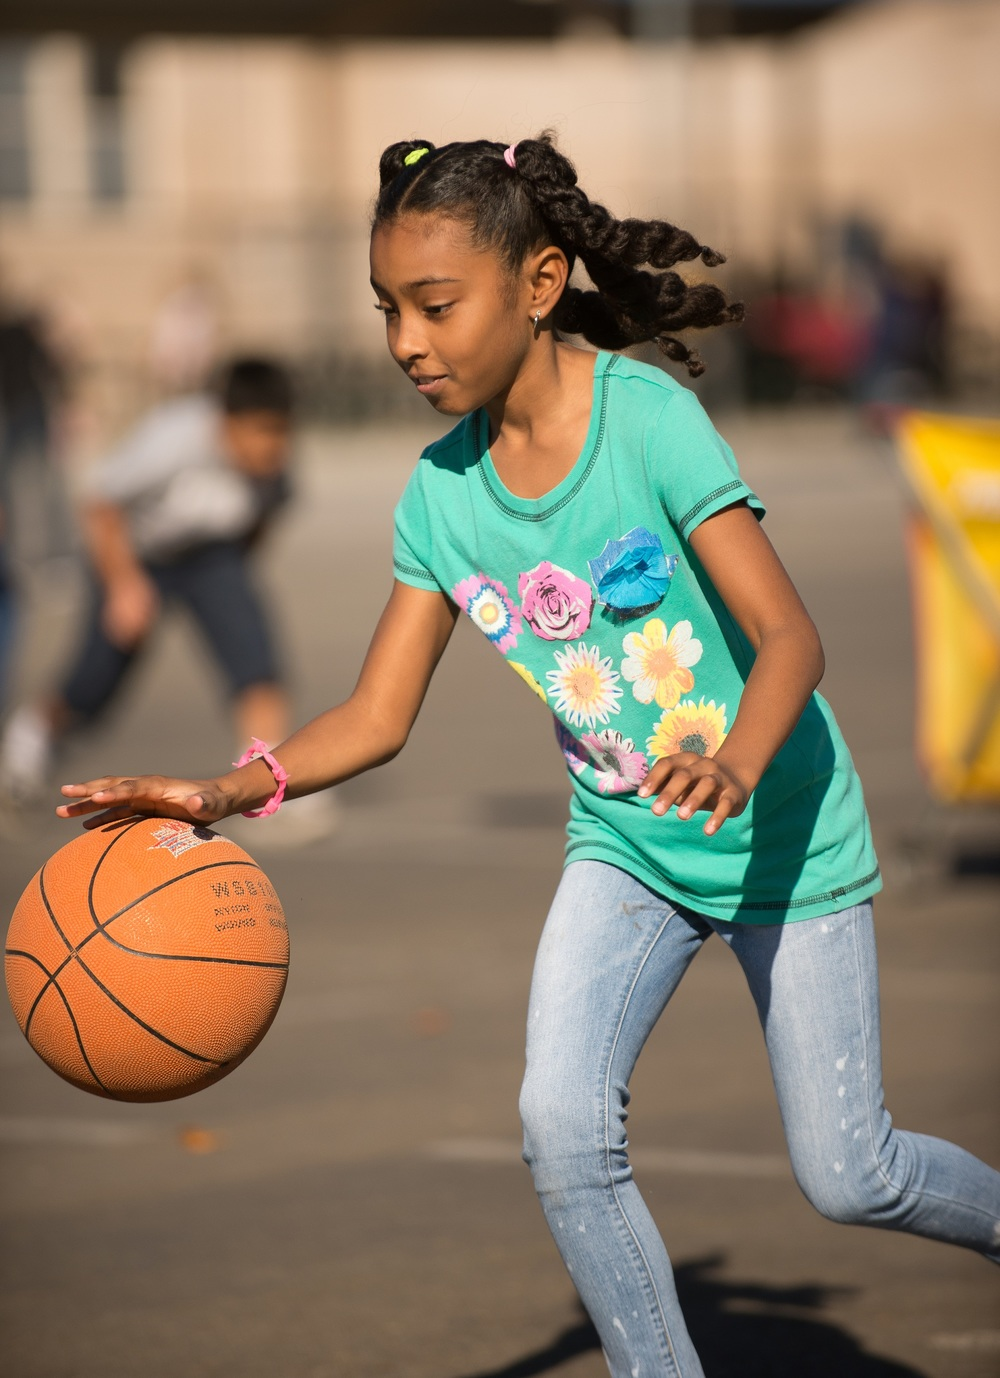 Woodruff Elementary fourth-graders work on their basketball handling skills during a recent dribbling exercise.